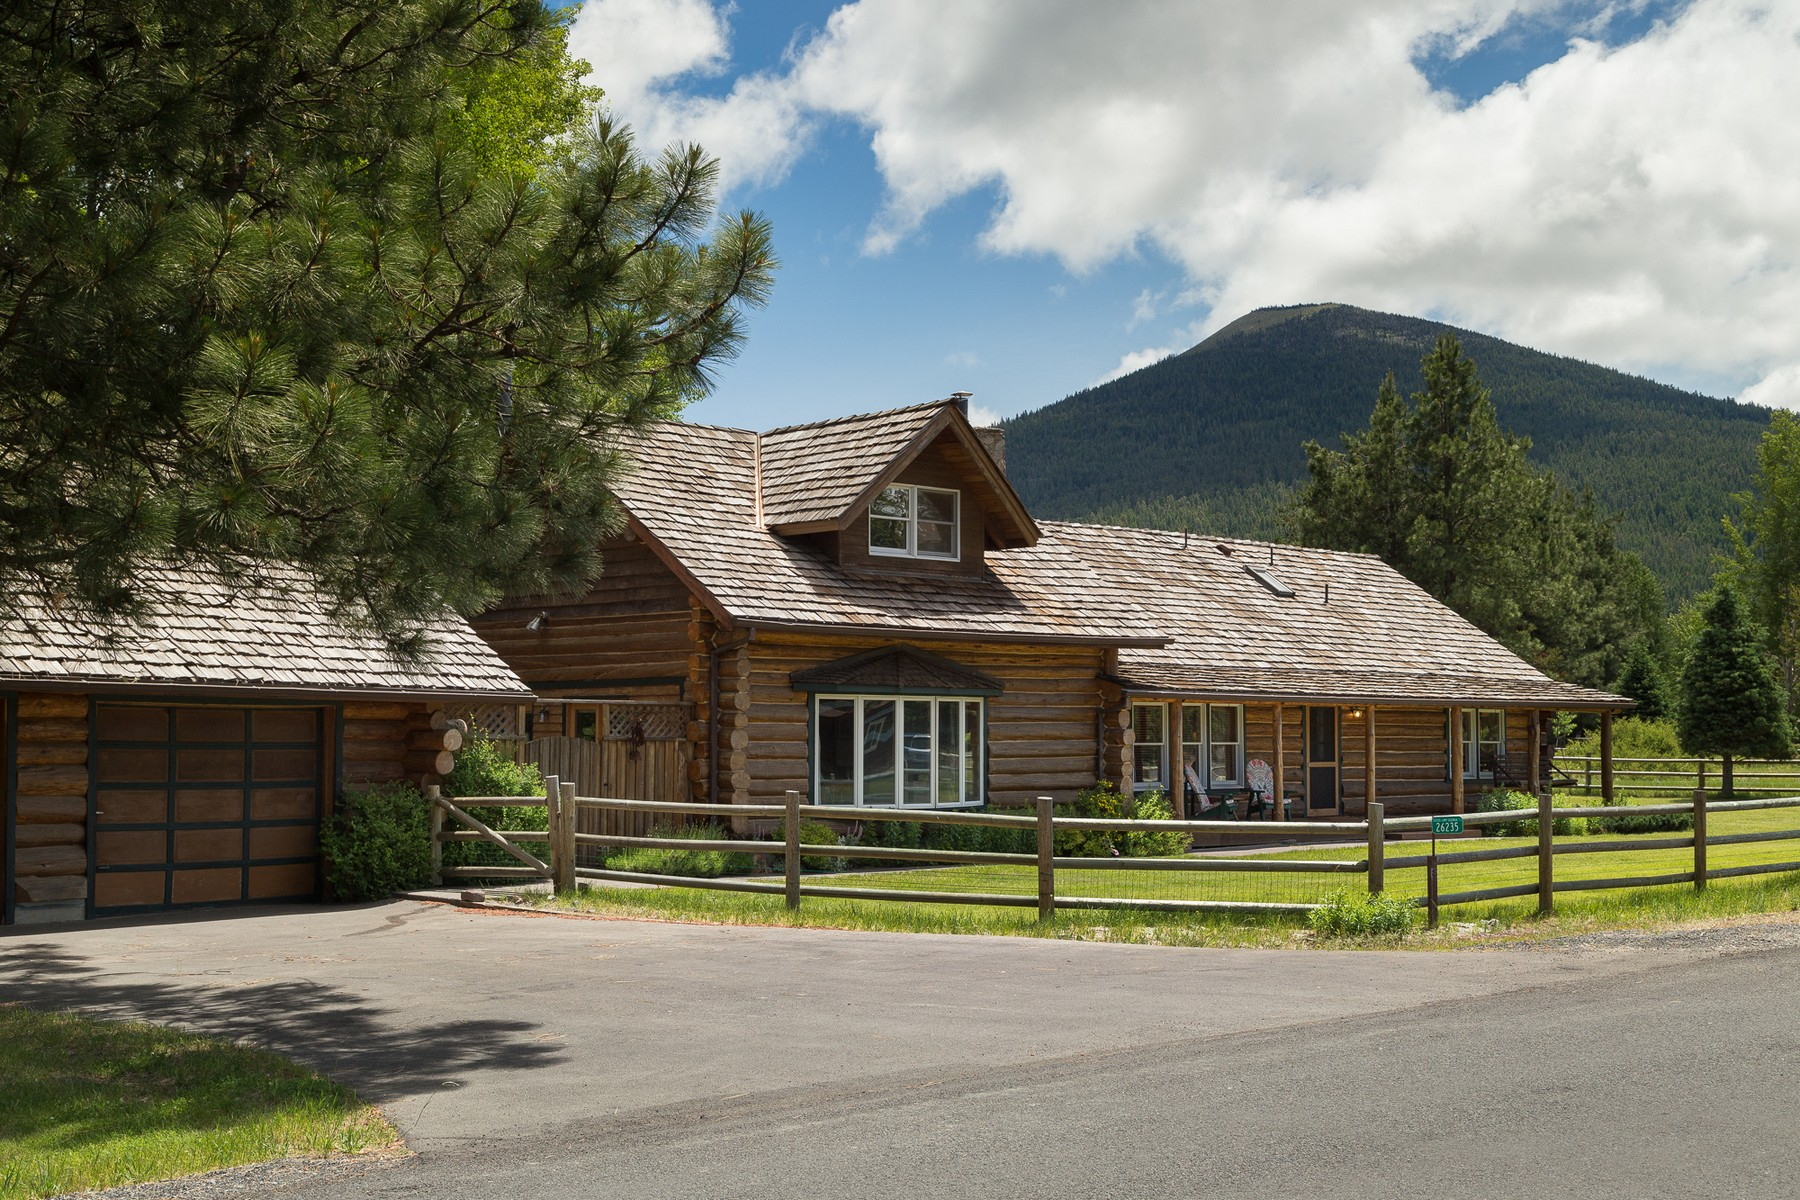 Single Family Homes for Active at 26235 SW Metolius Meadows Drive Camp Sherman, OR 26235 Metolius Meadows Dr Camp Sherman, Oregon 97730 United States